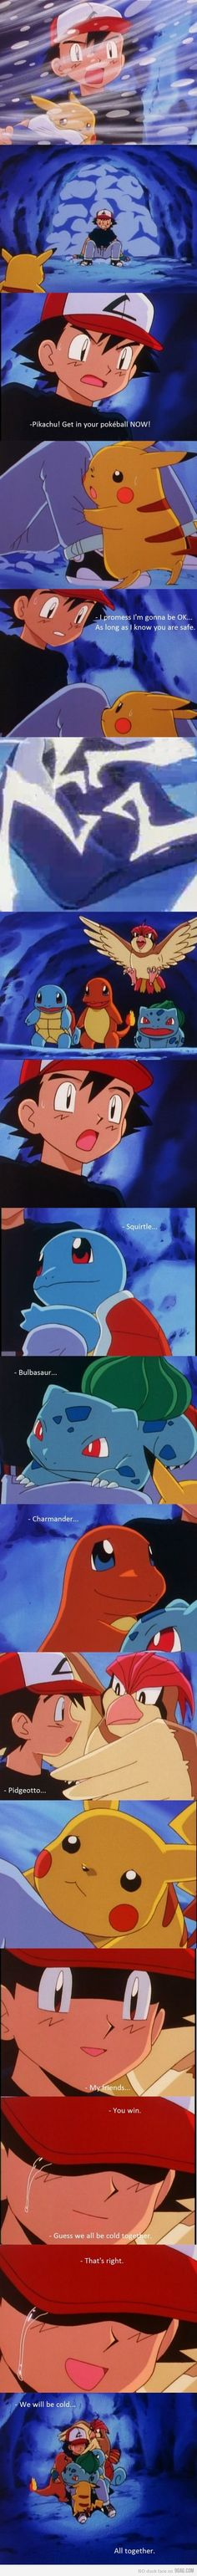 One my all time favorite scenes (Pokémon):